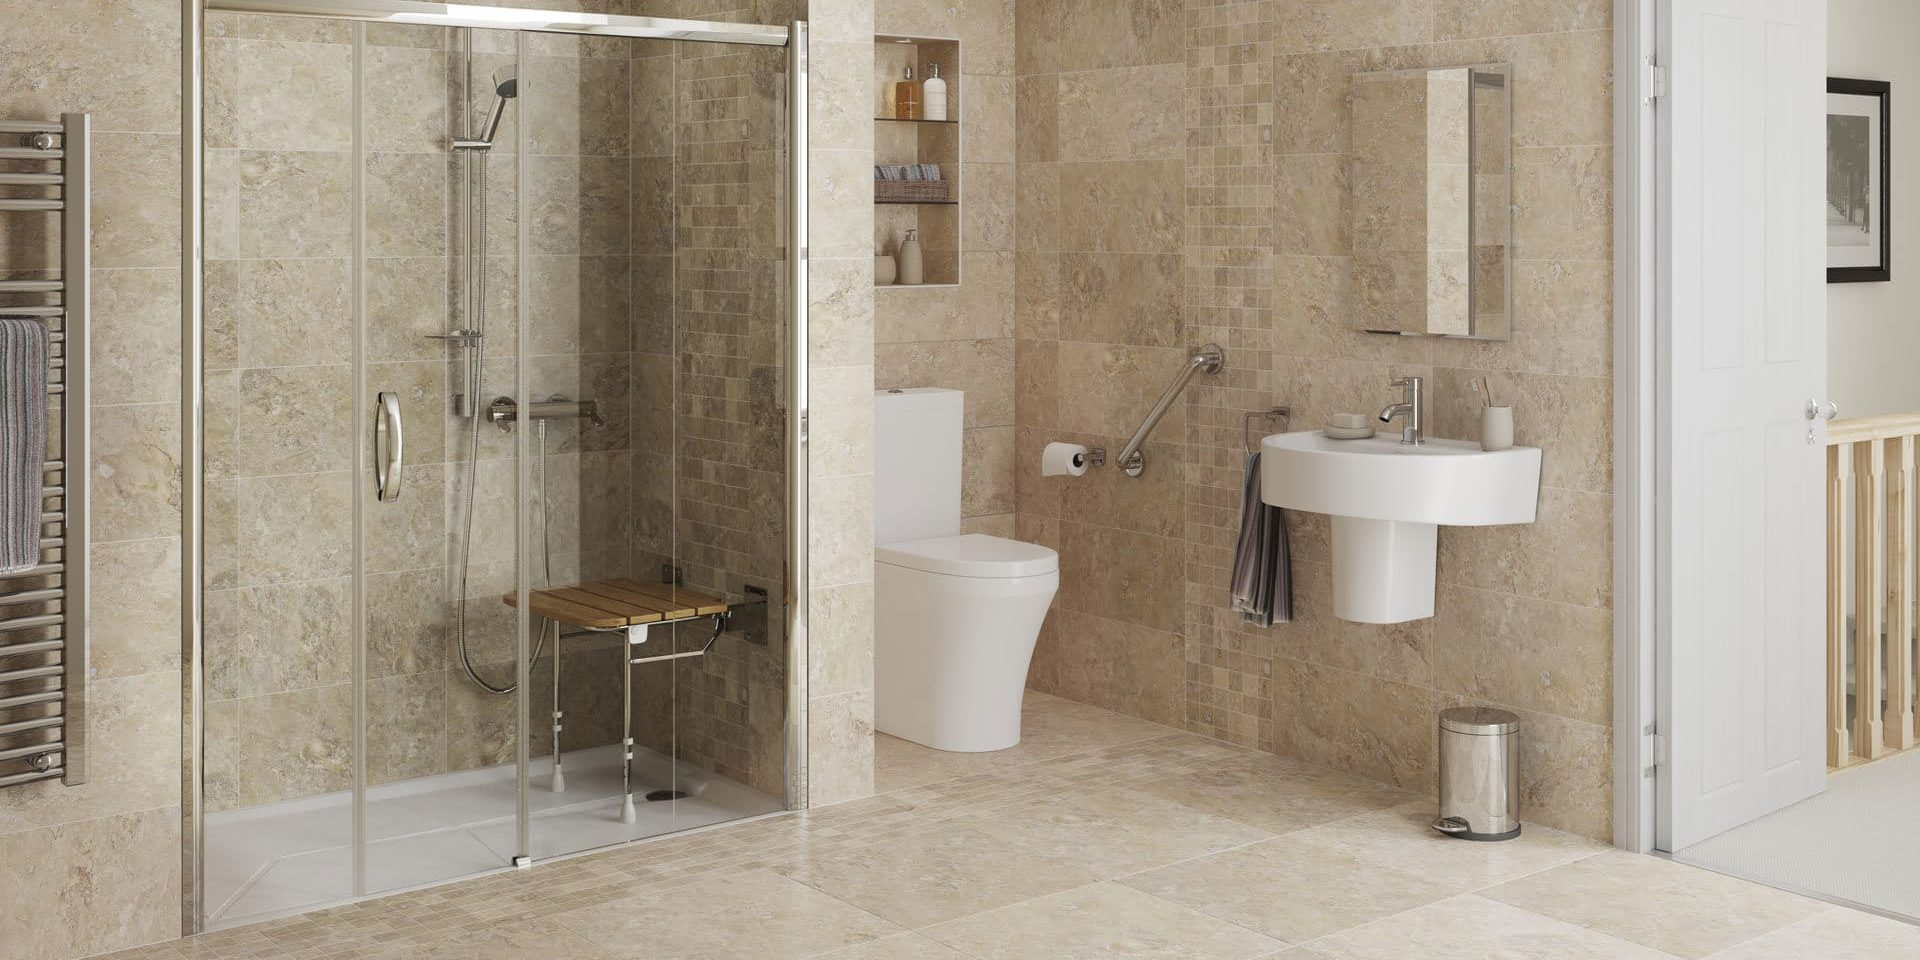 An Essential Guide To A Handicap Bathroom Remodel